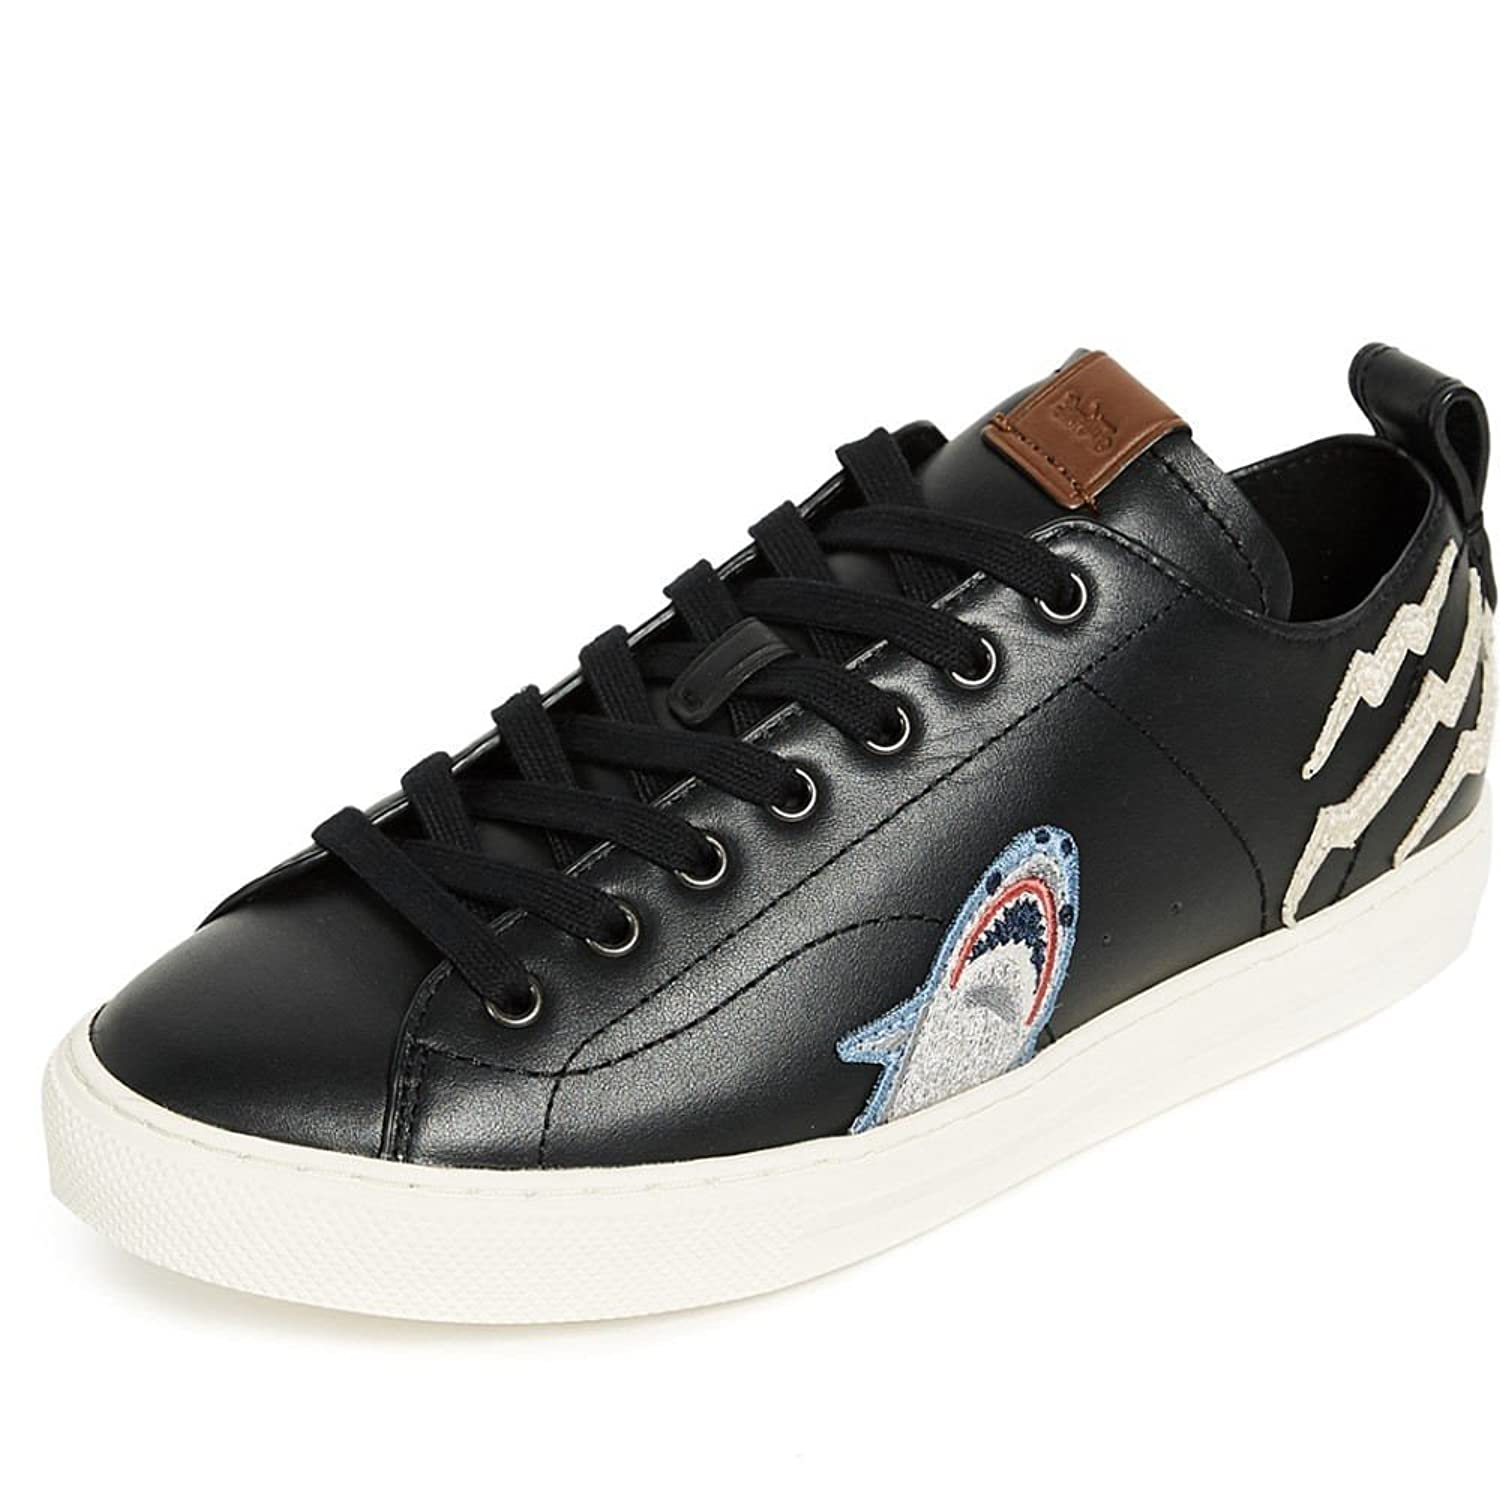 (コーチ) Coach New York メンズ シューズ靴 スニーカー Sharkie Patched C121 Low Top Sneakers [並行輸入品] B07C7ZMRGC